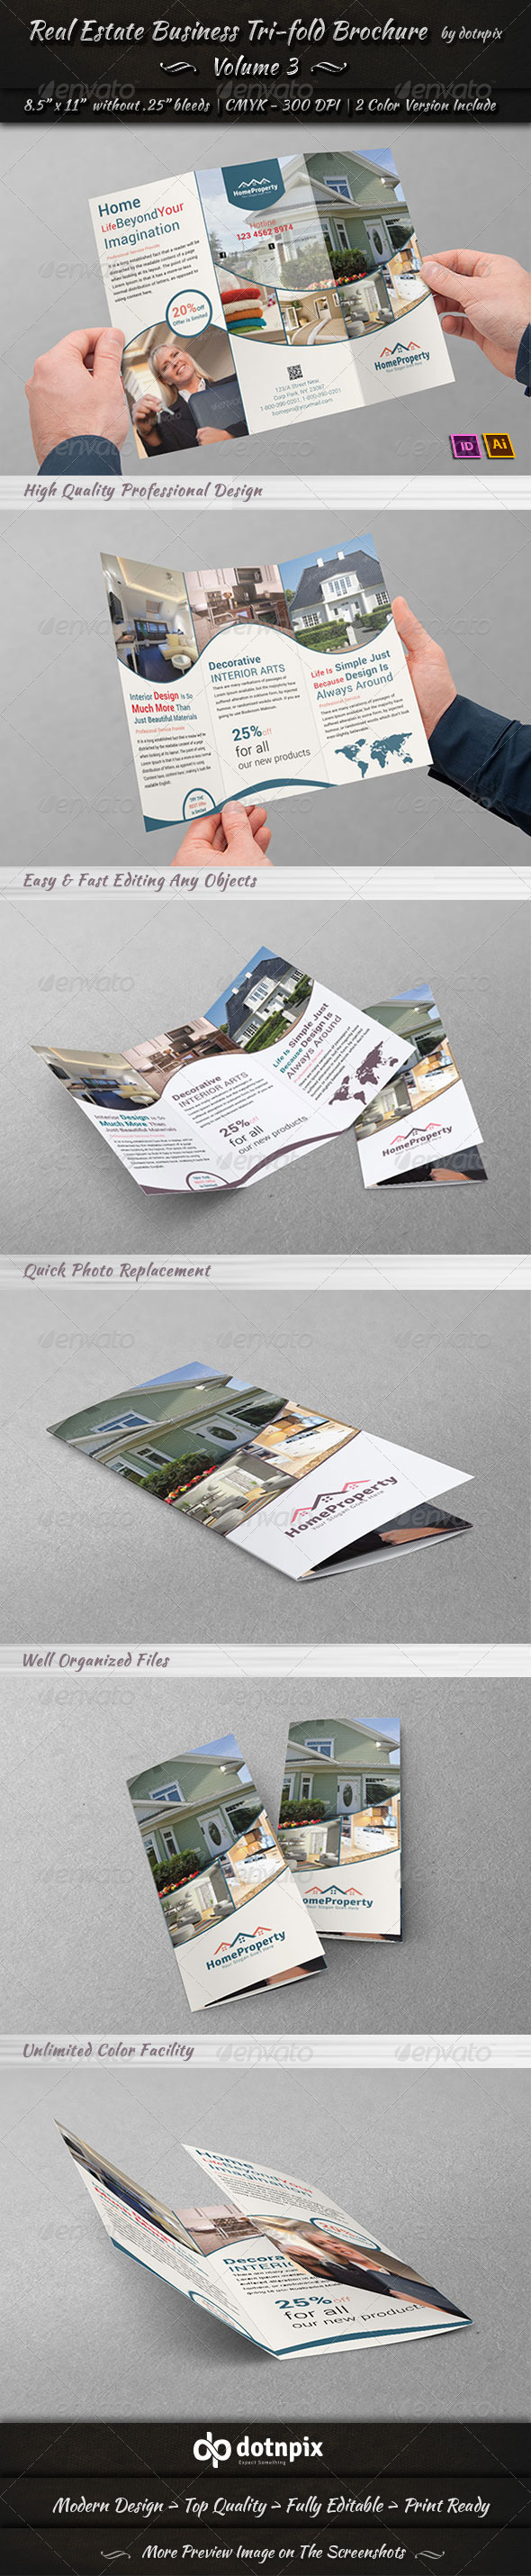 GraphicRiver Real Estate Business TriFold Brochure Volume 3 6657141